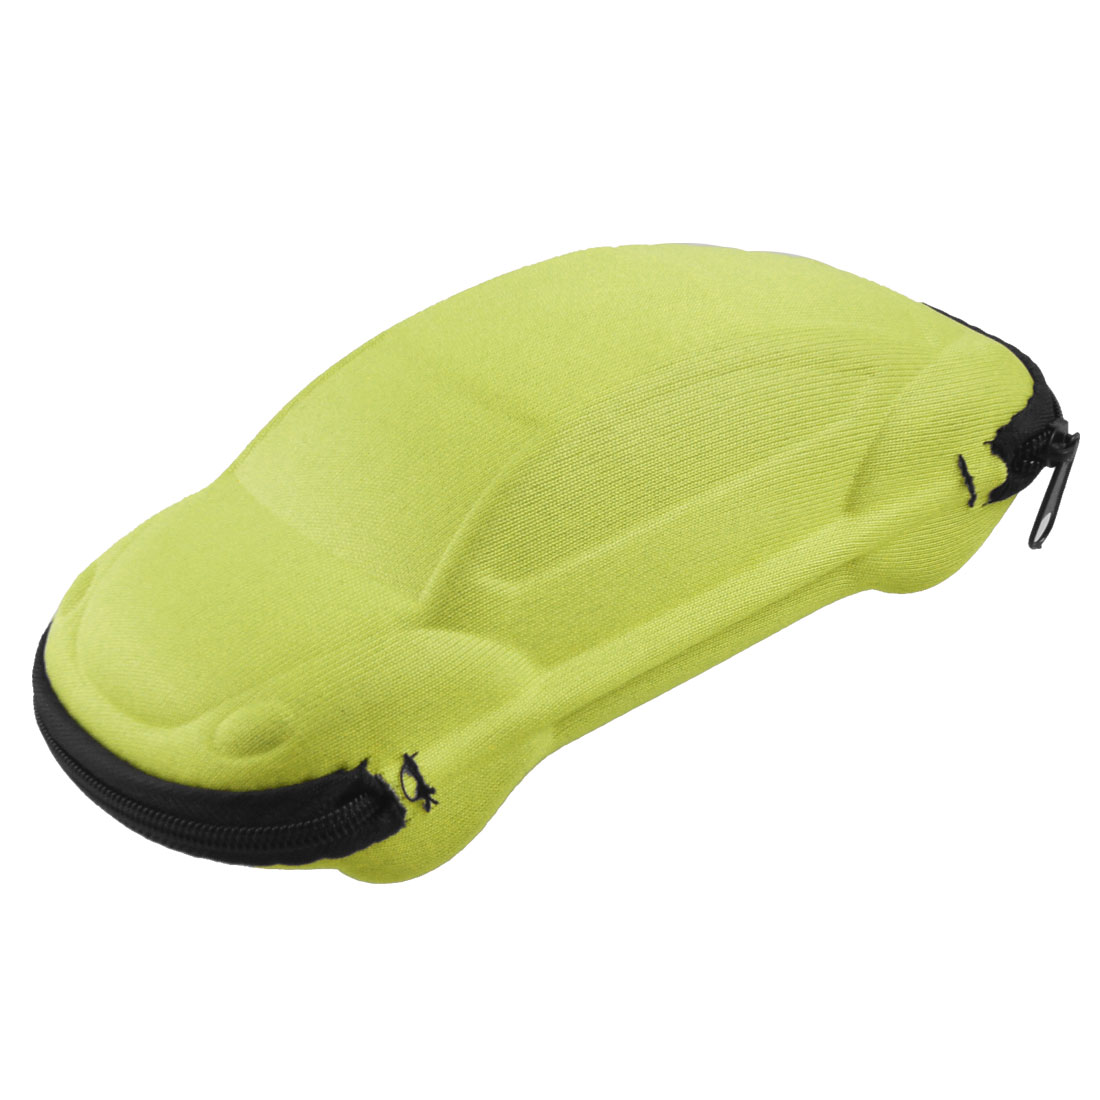 Black Yellow Car Shape Zip up Eyeglasses Sunglasses Case Box Holder